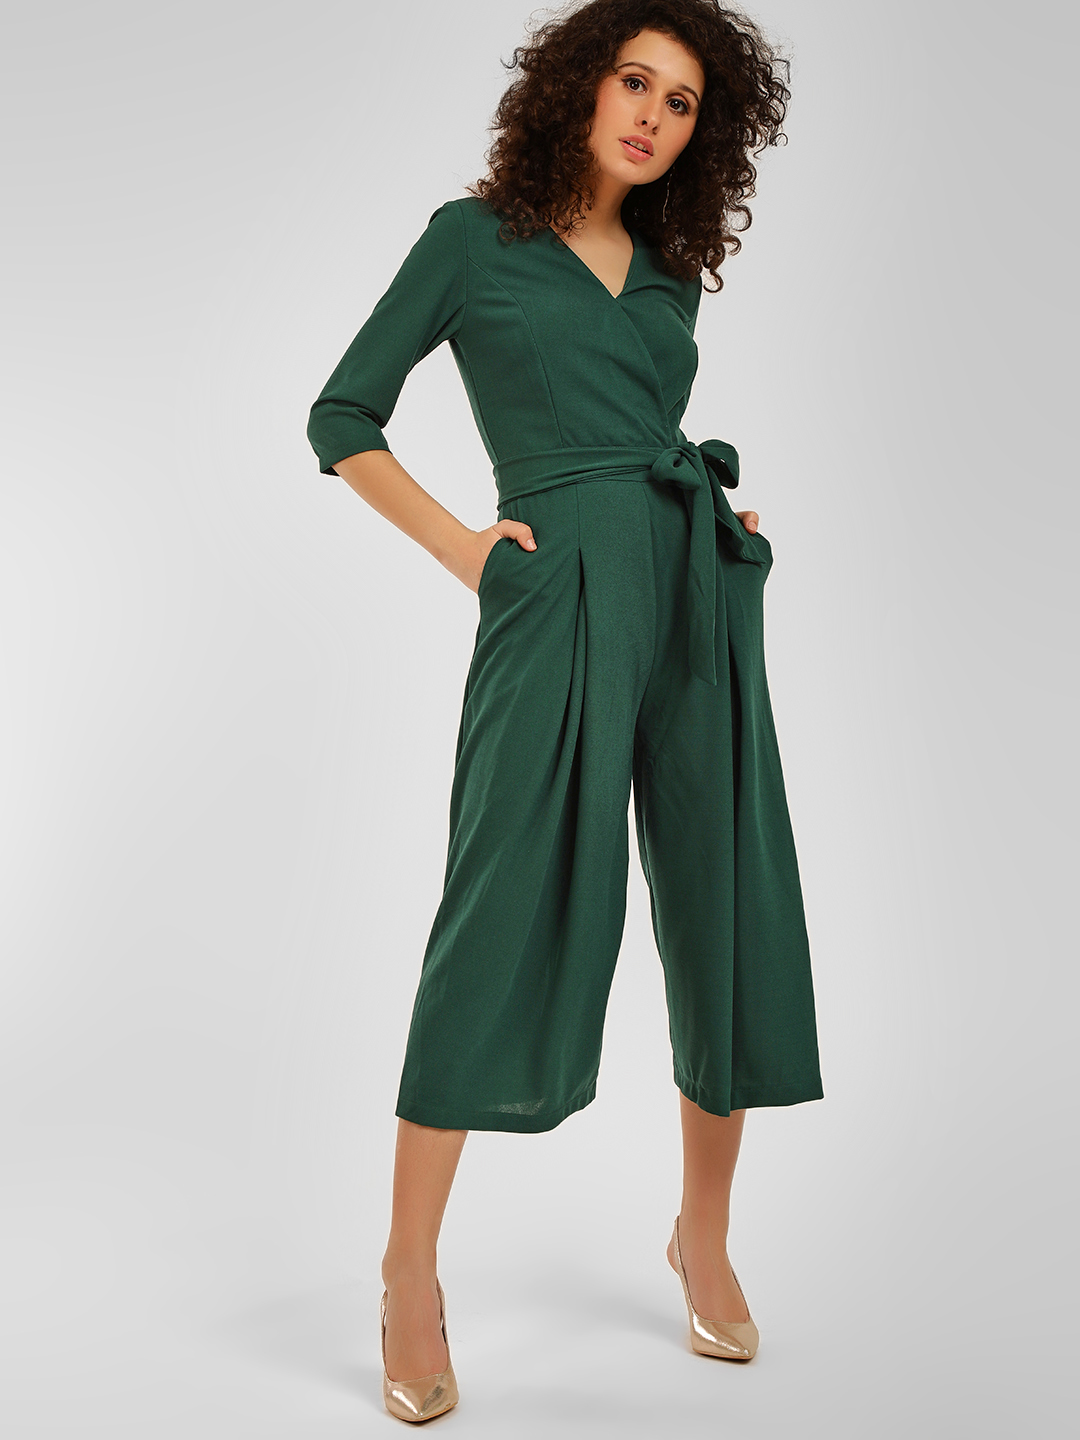 Origami Lily Green Front Tie-Up Jumpsuit 1